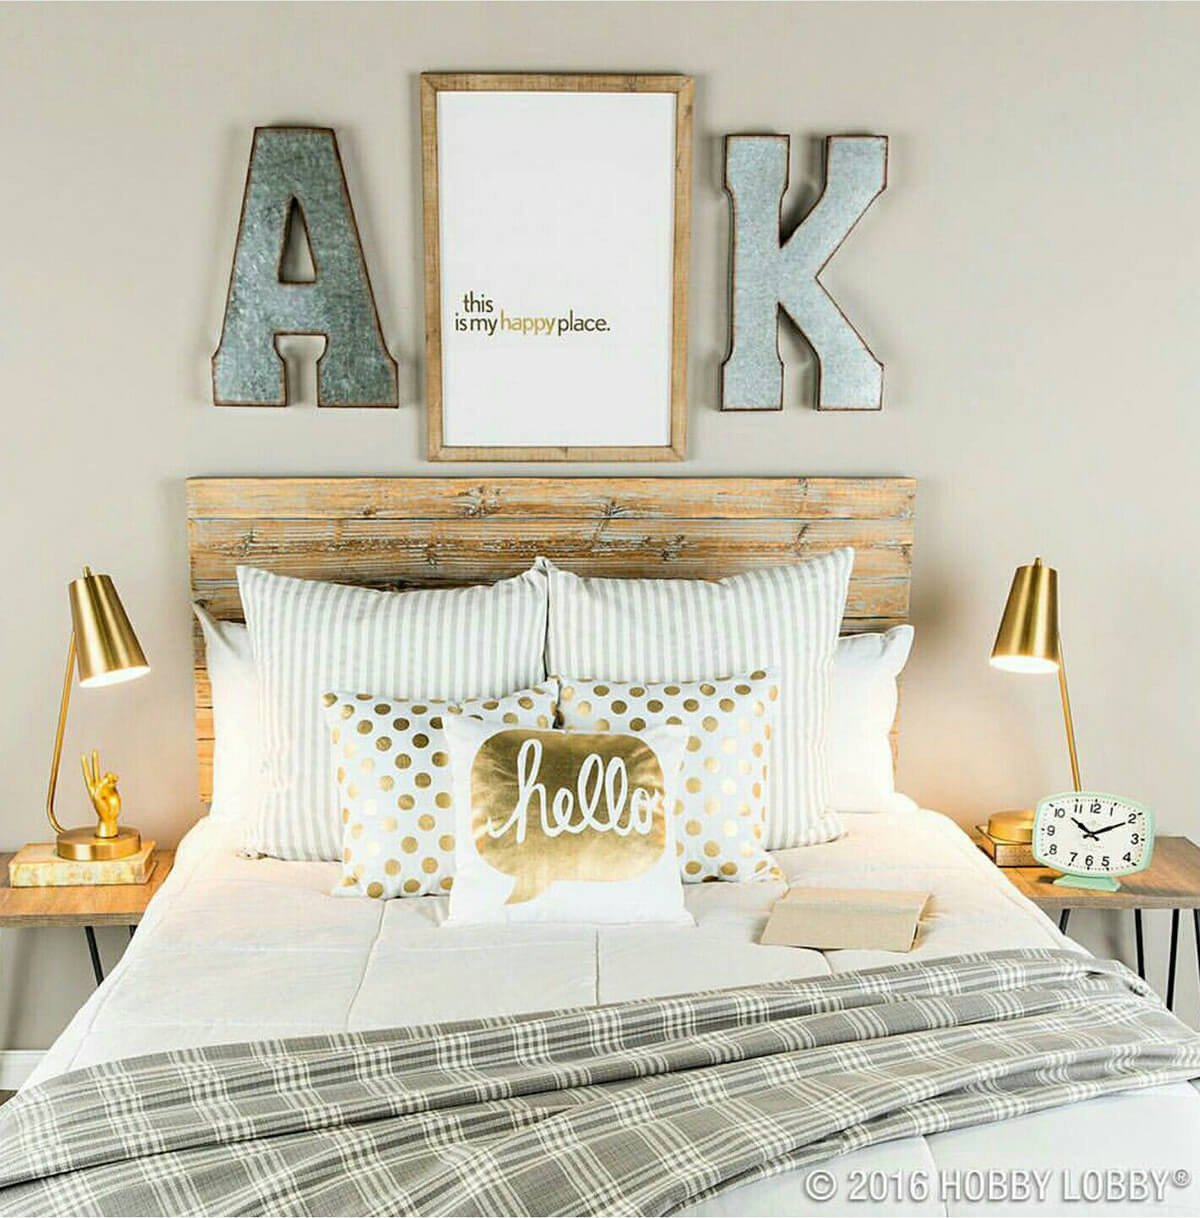 Wall Decor Ideas for Bedroom Inspirational 25 Best Bedroom Wall Decor Ideas and Designs for 2019